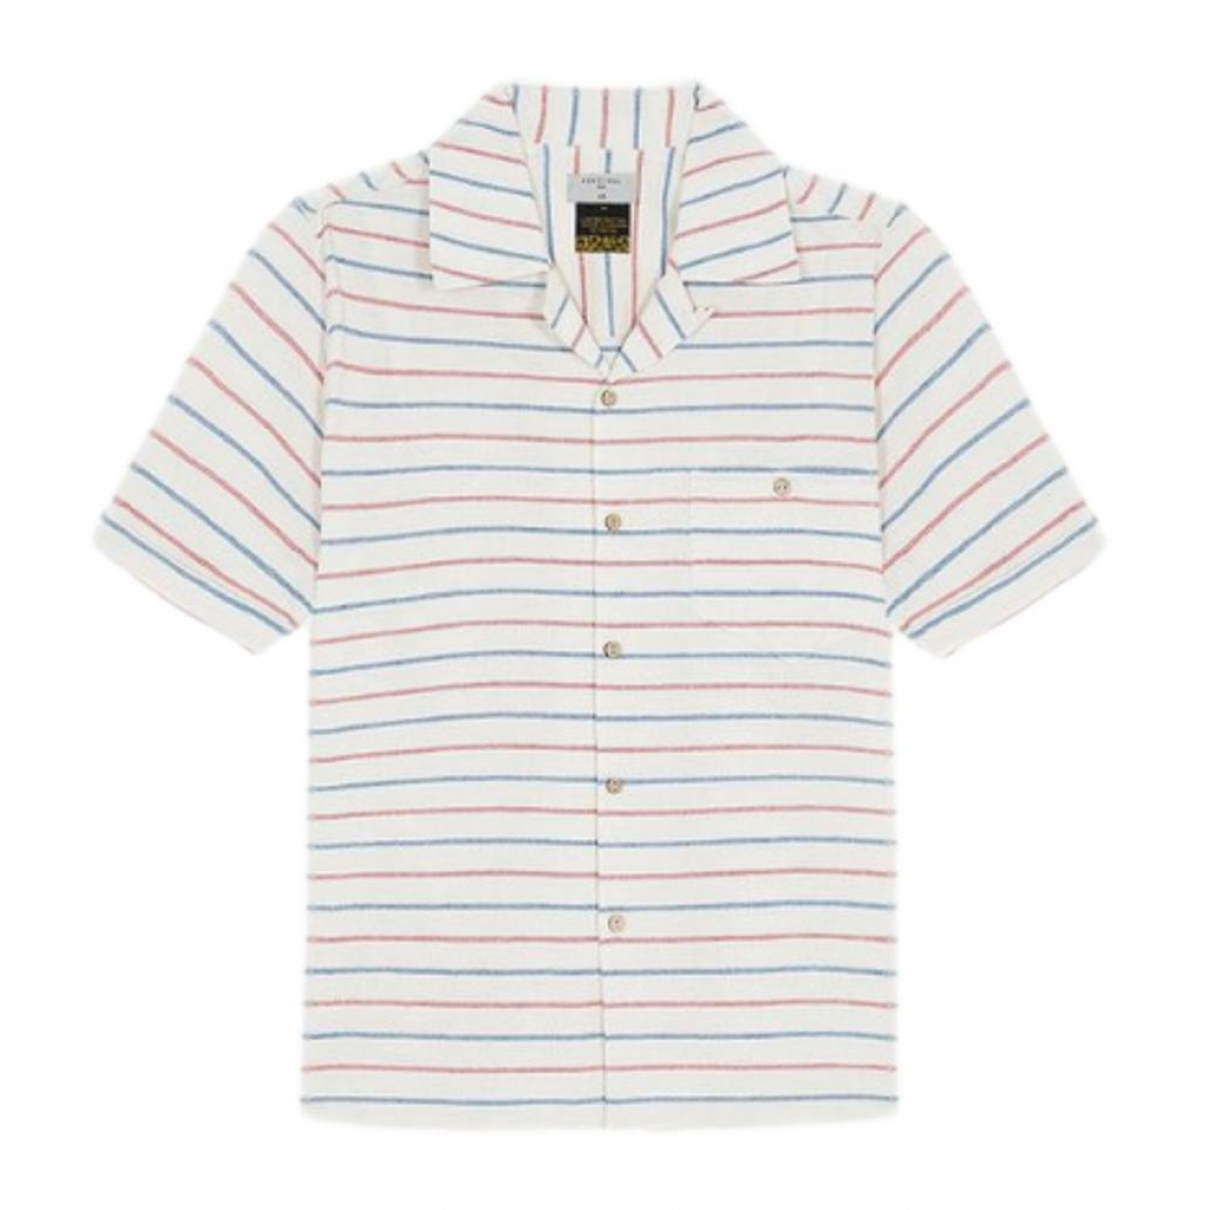 Non Signé / Unsigned \N Cotton Shirts for Men S International